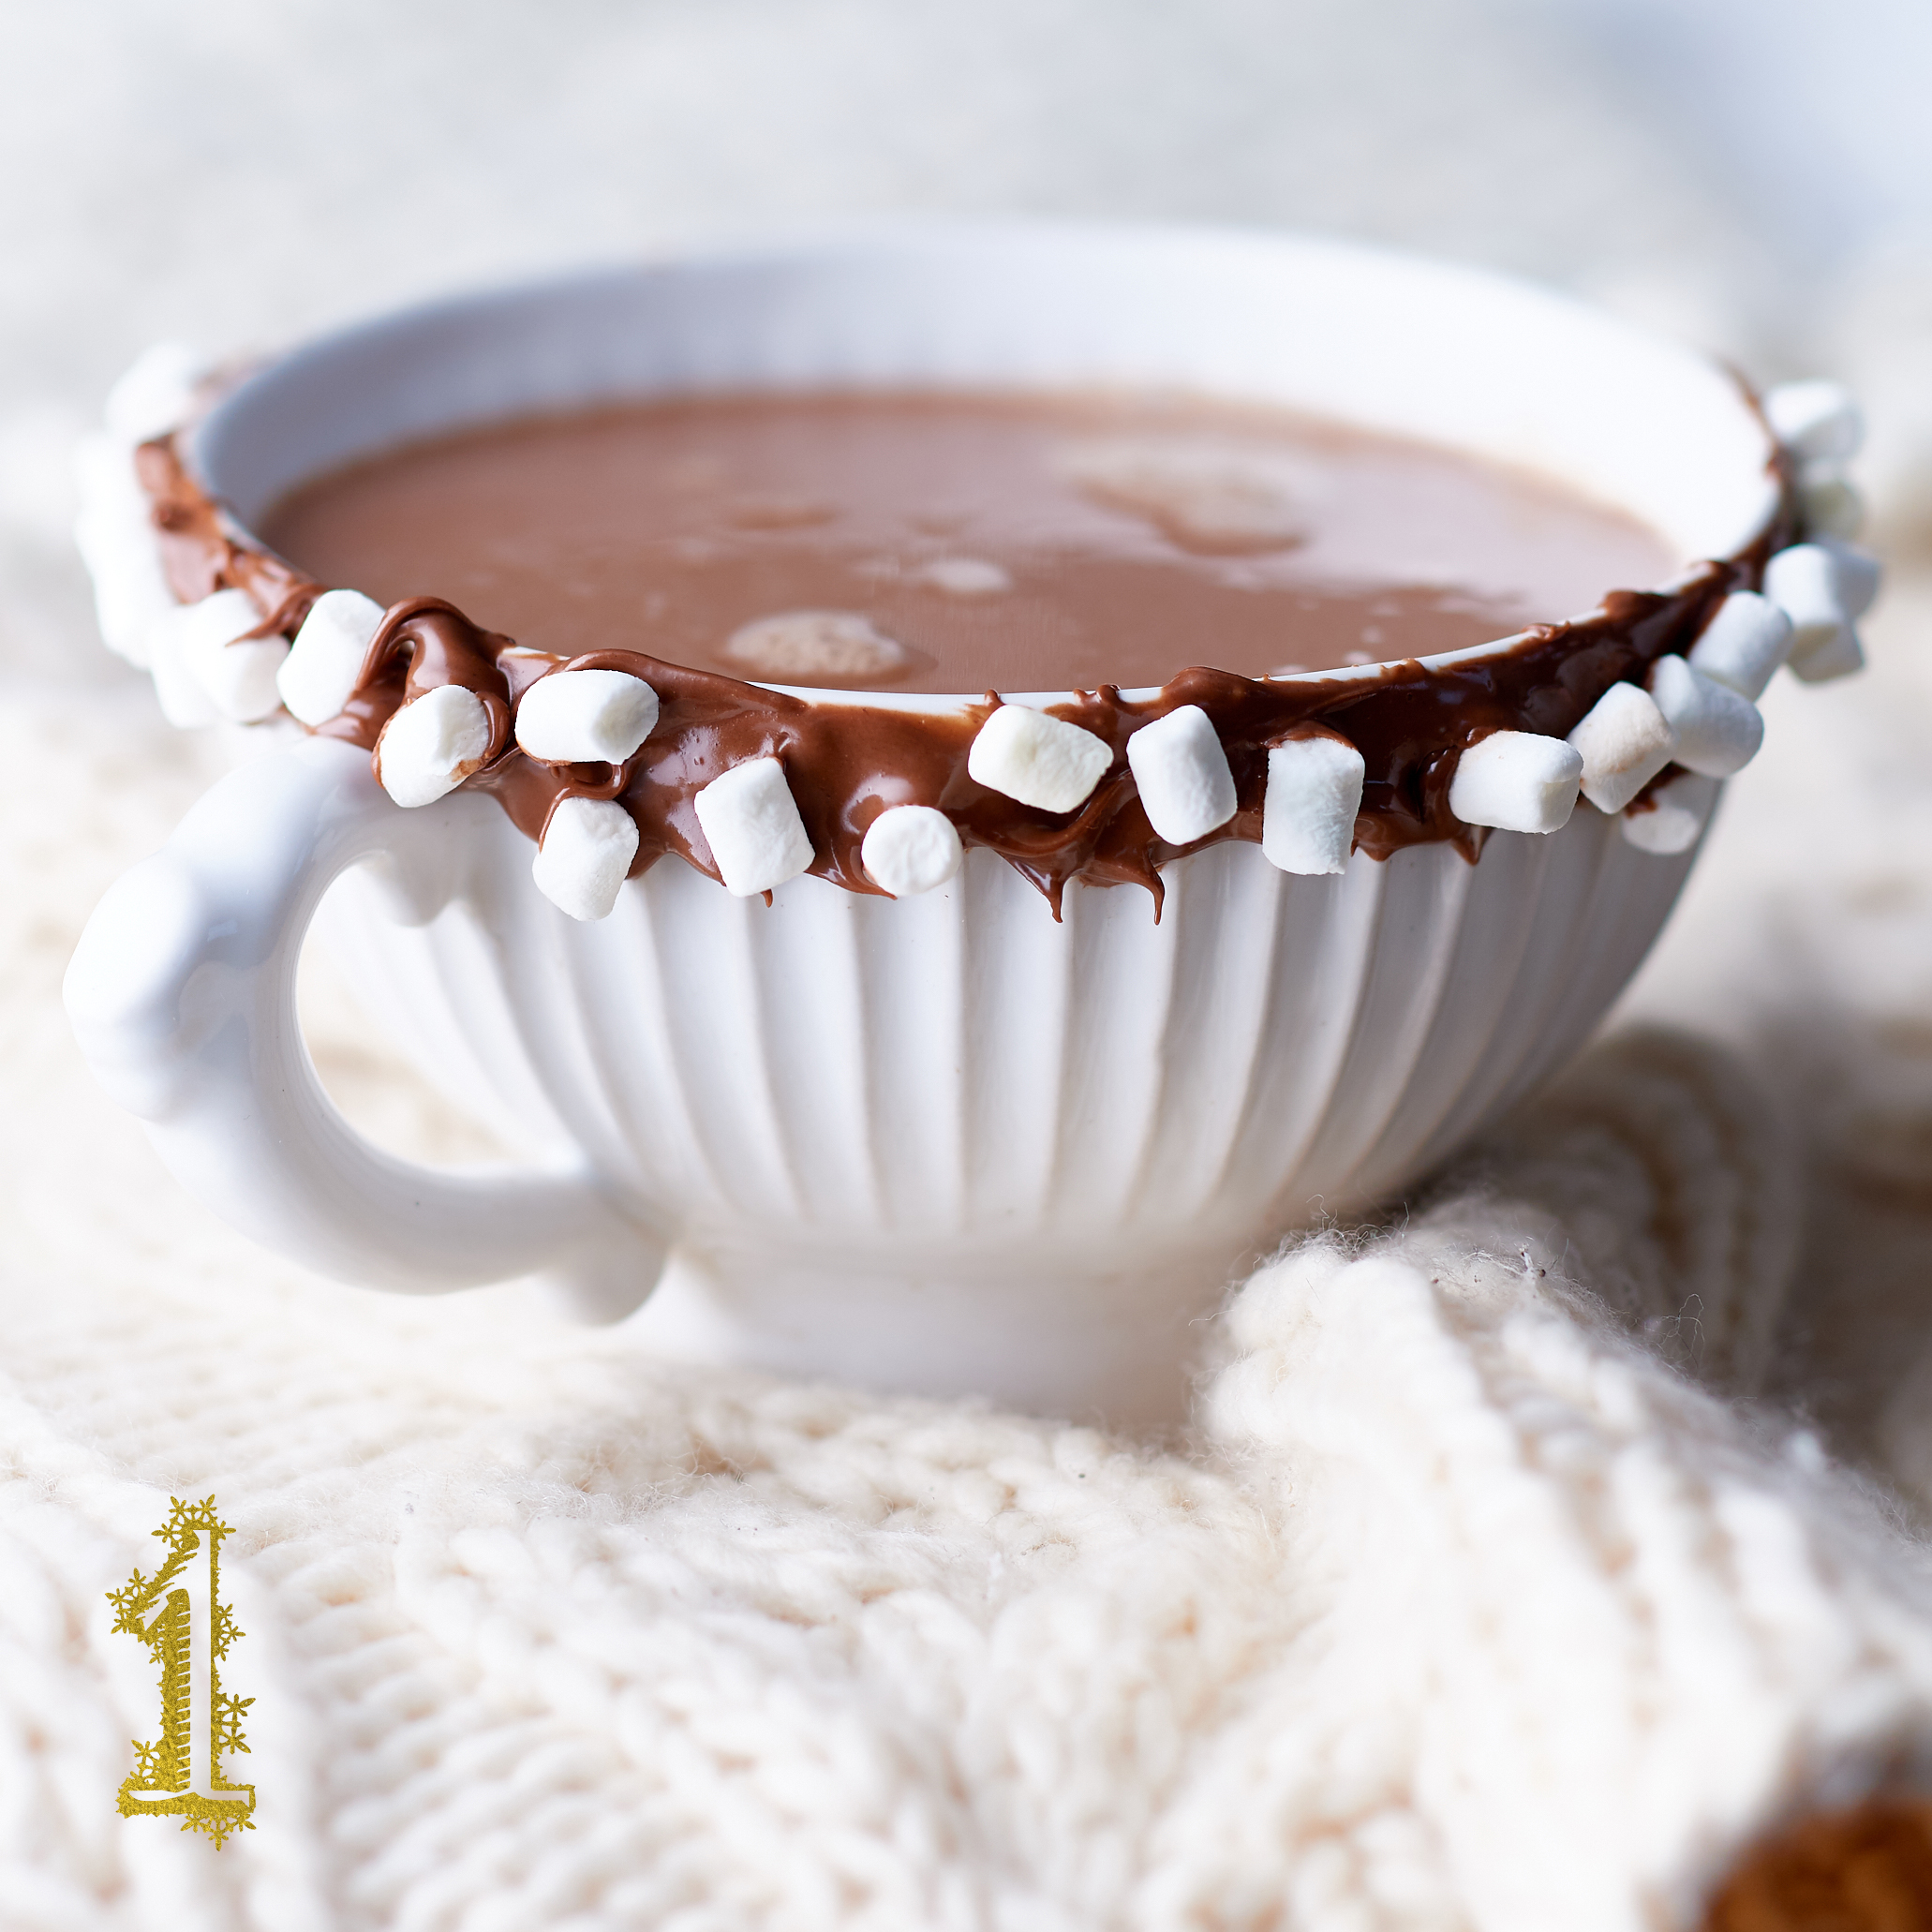 1.Hot-Chocolate-with-Nutella.jpg